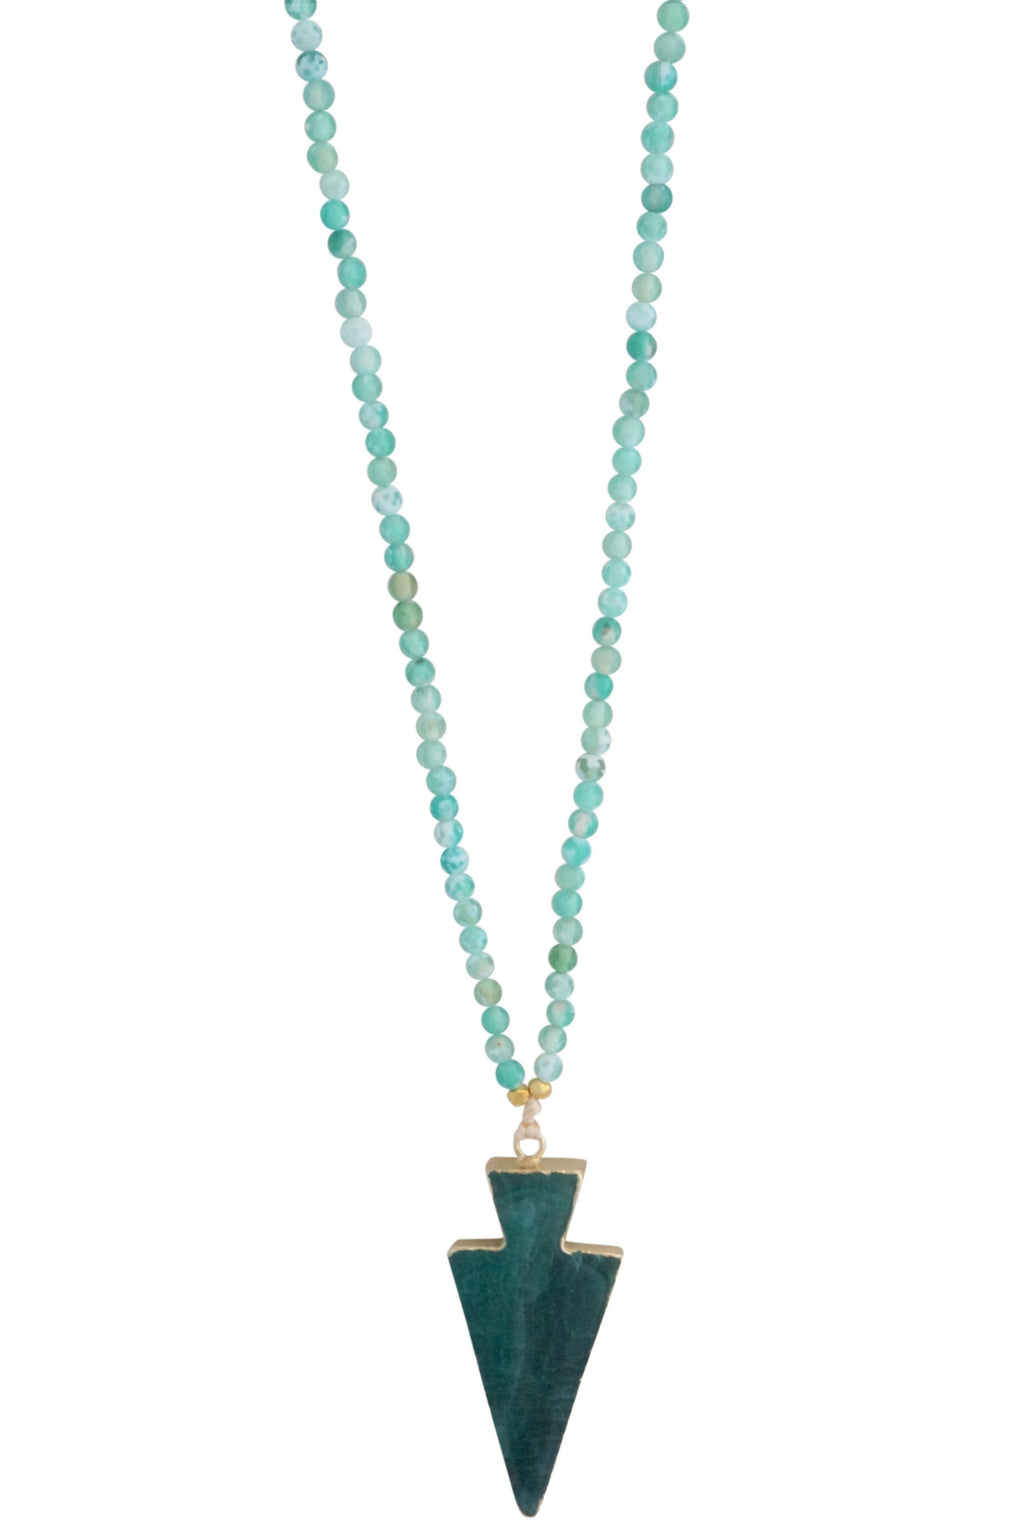 Abundance Necklace - Carolyn Hearn Designs